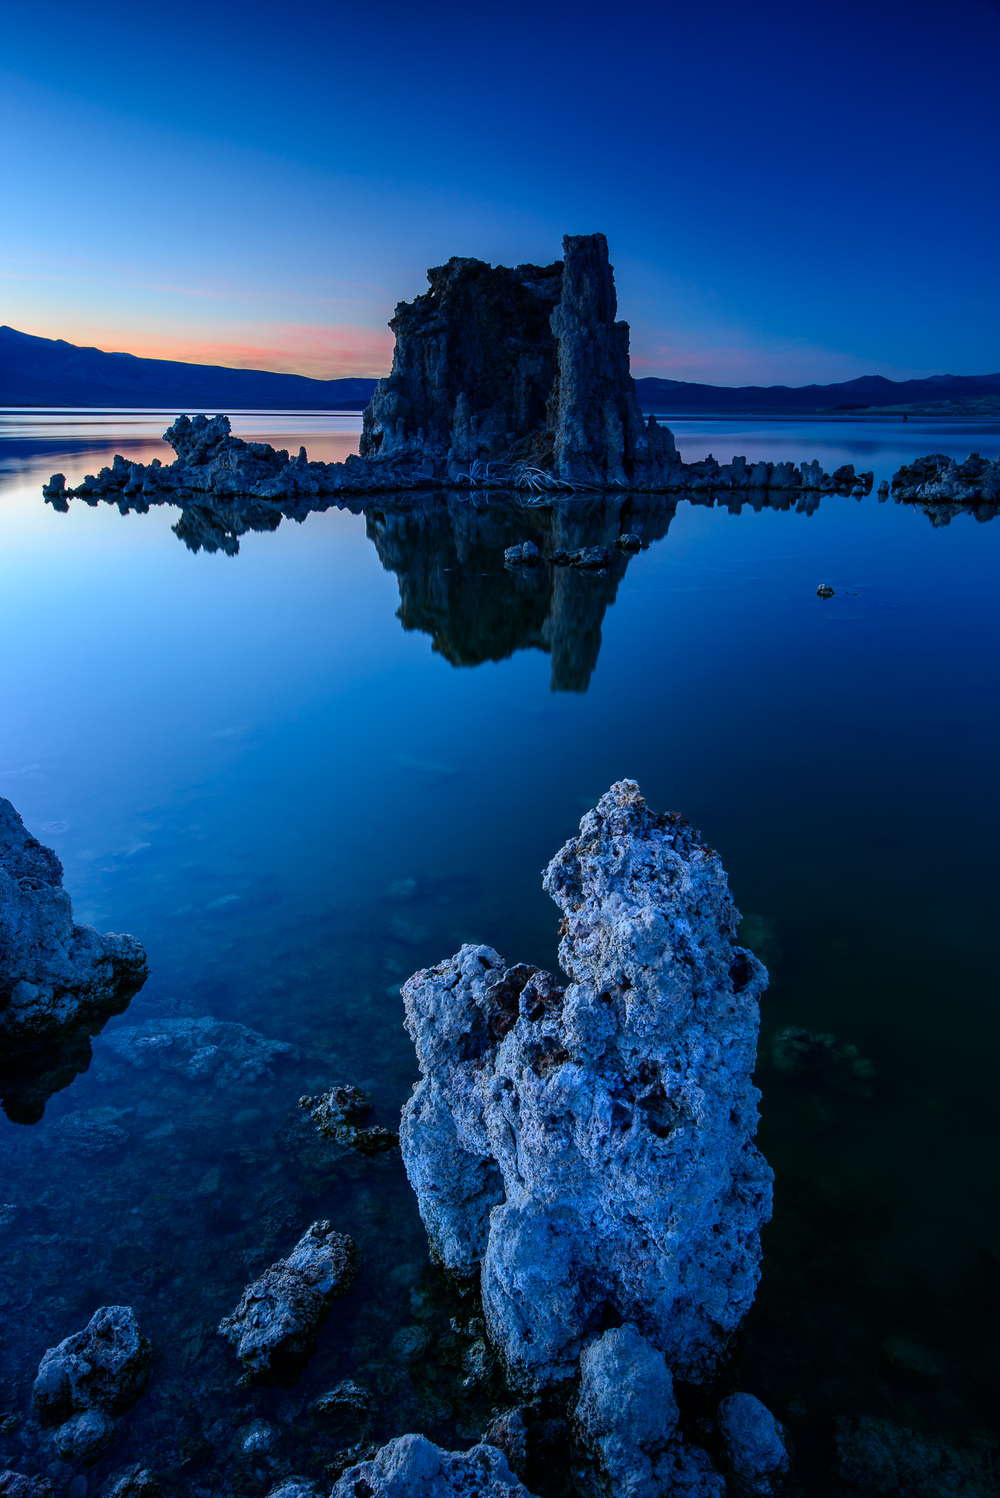 Blue hour sets in at Mono Lake, CA.